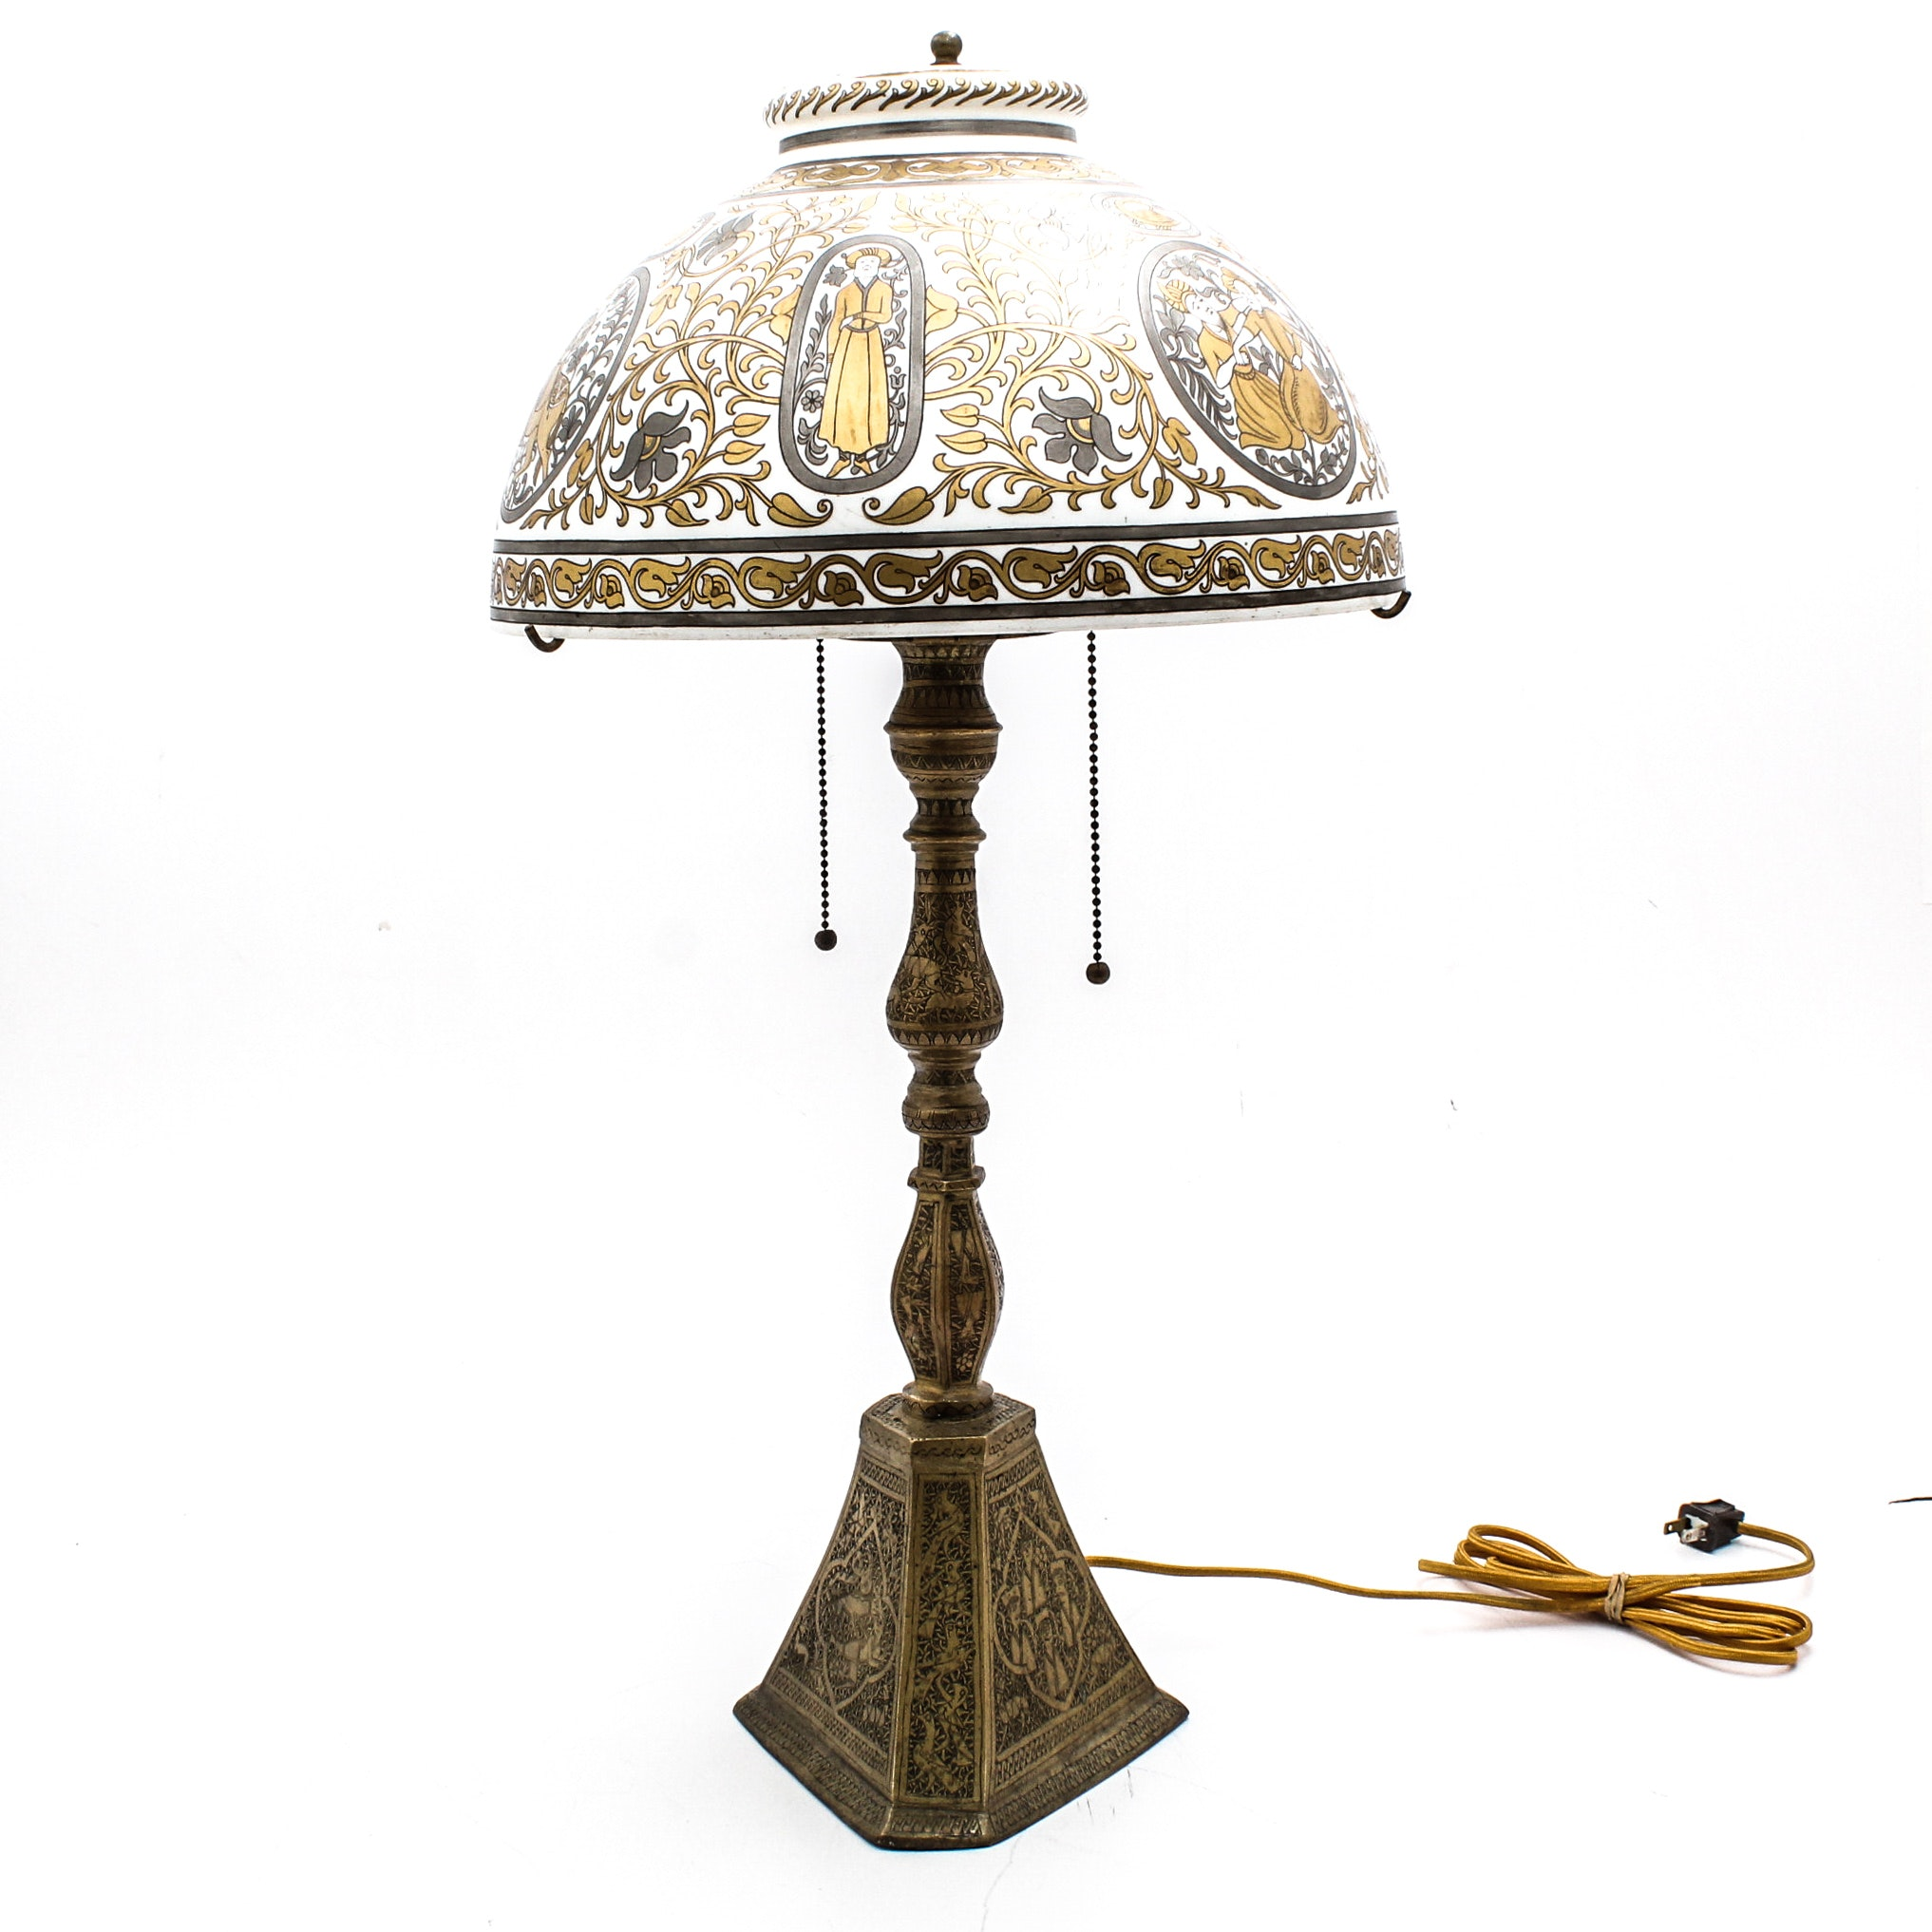 Cast Brass Lamp with Hand-Painted Persian Style Milk Glass Shade